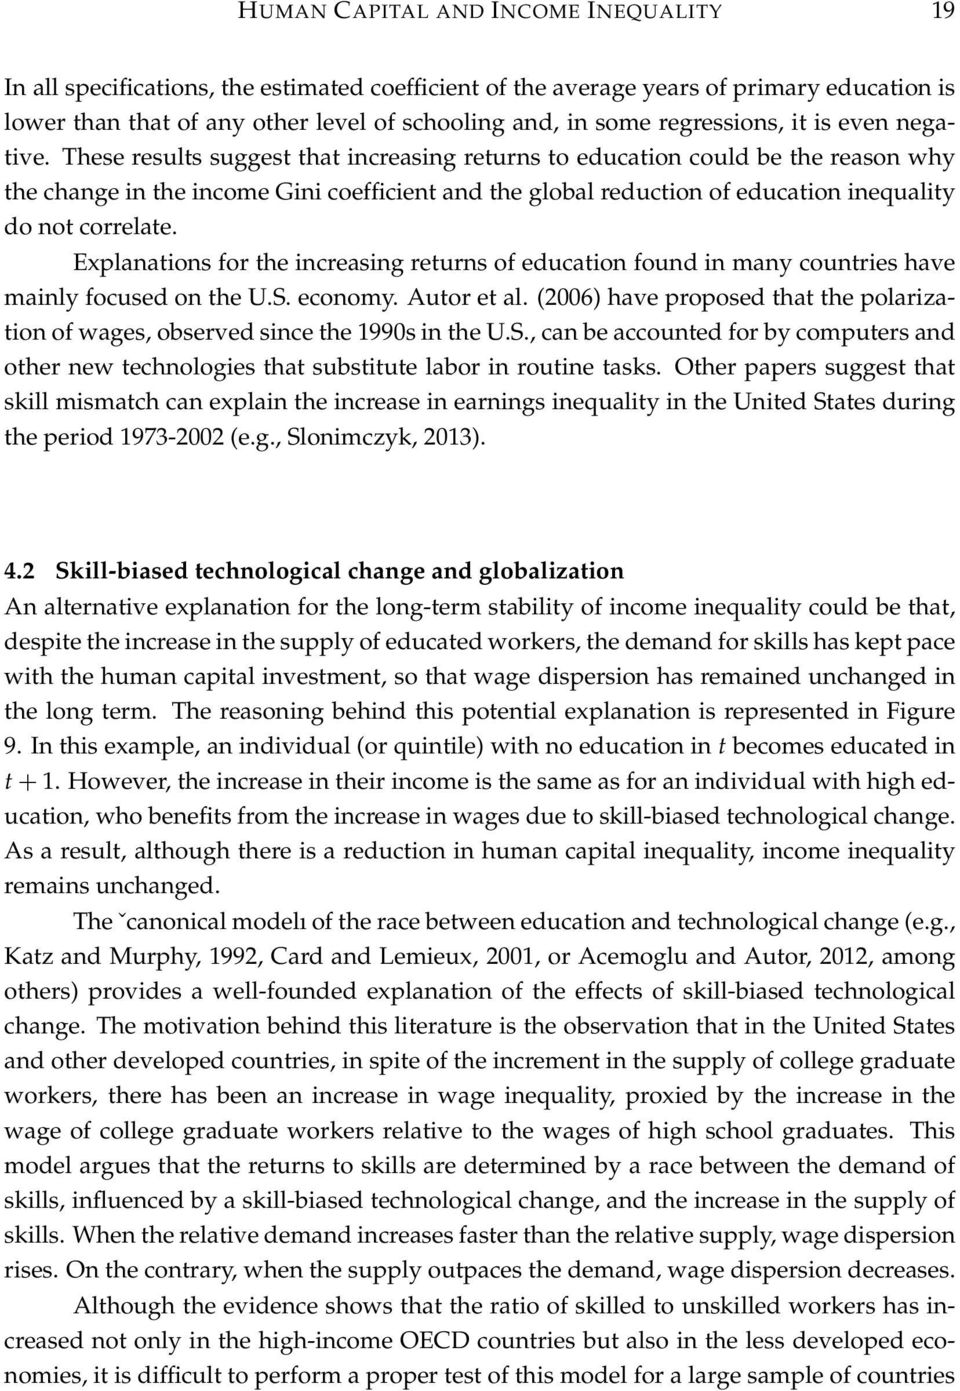 These results suggest that increasing returns to education could be the reason why the change in the income Gini coefficient and the global reduction of education inequality do not correlate.